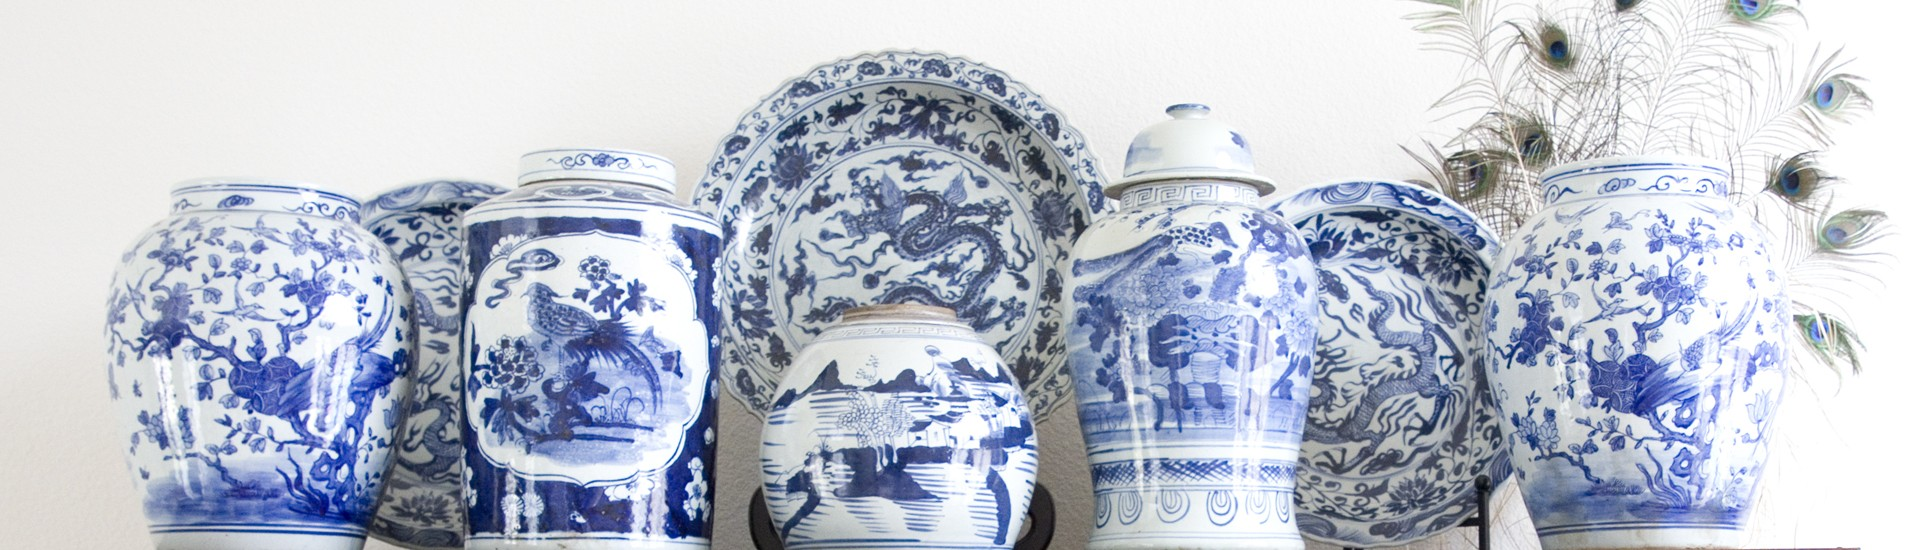 Classic Blue and White Porcelain